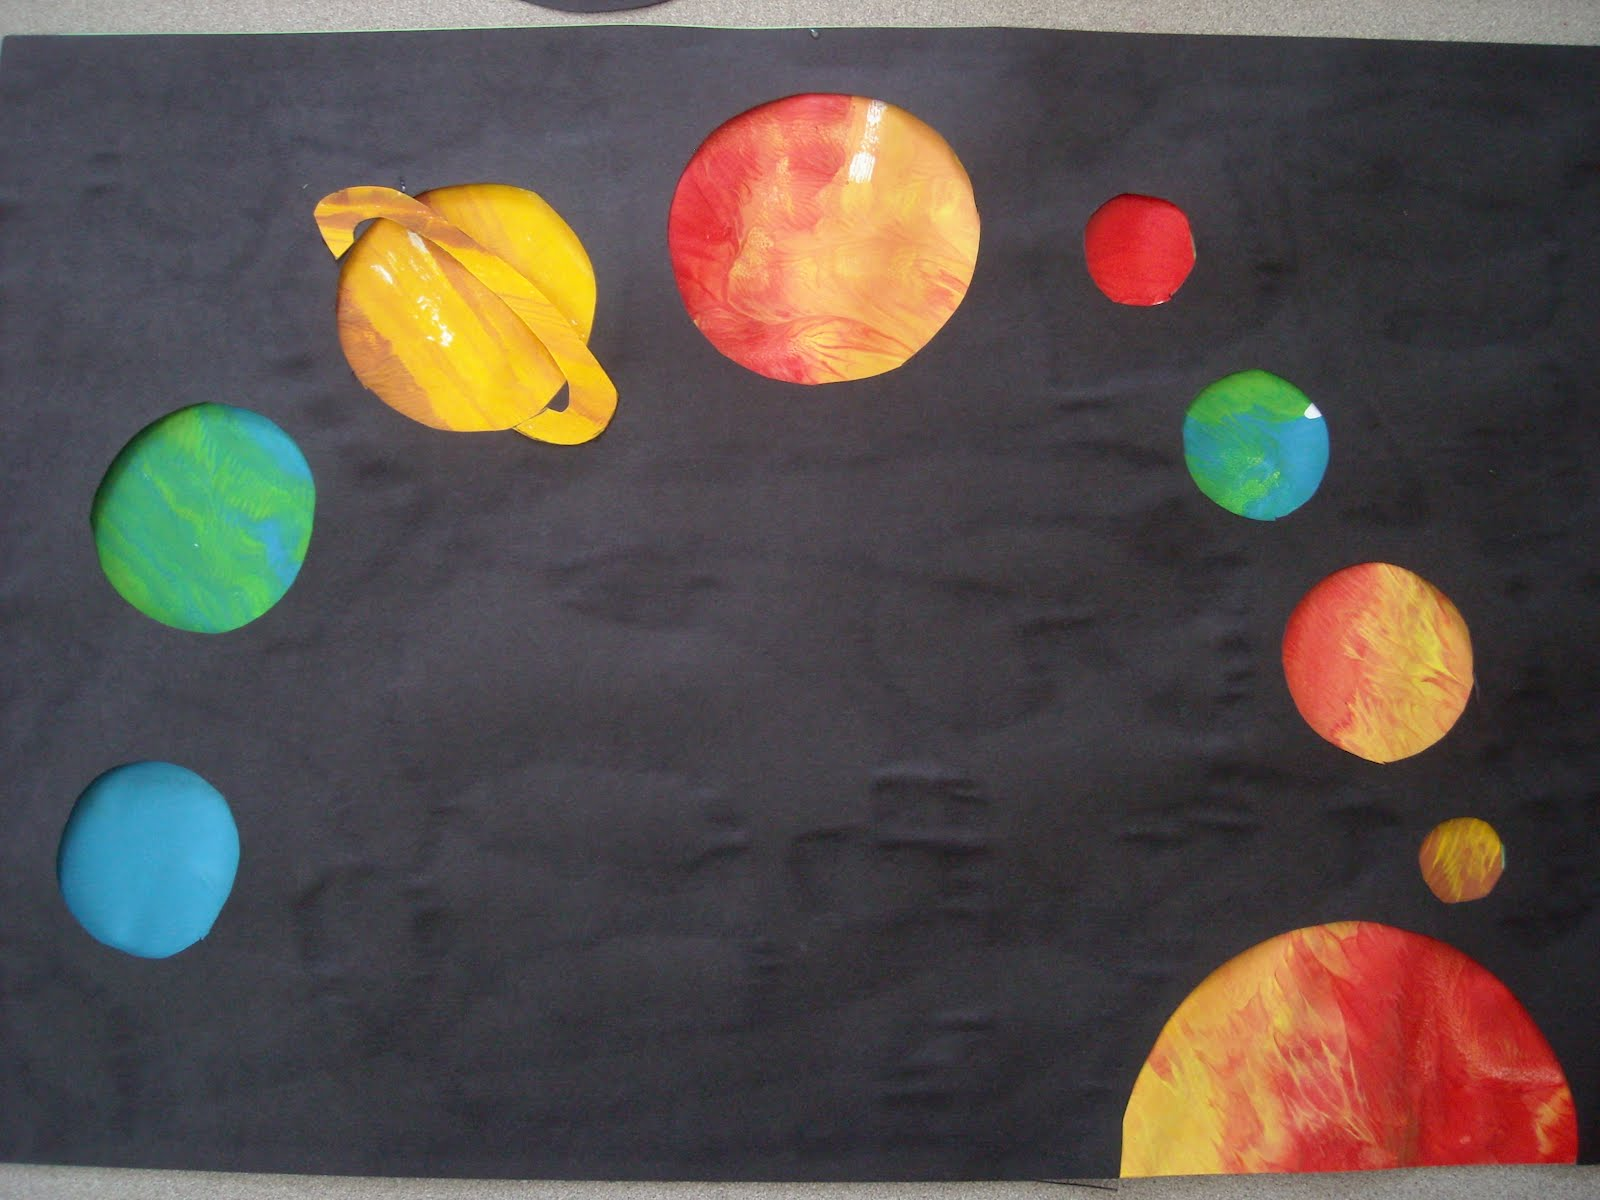 Patty S Project Ideas Planet Project Part 2